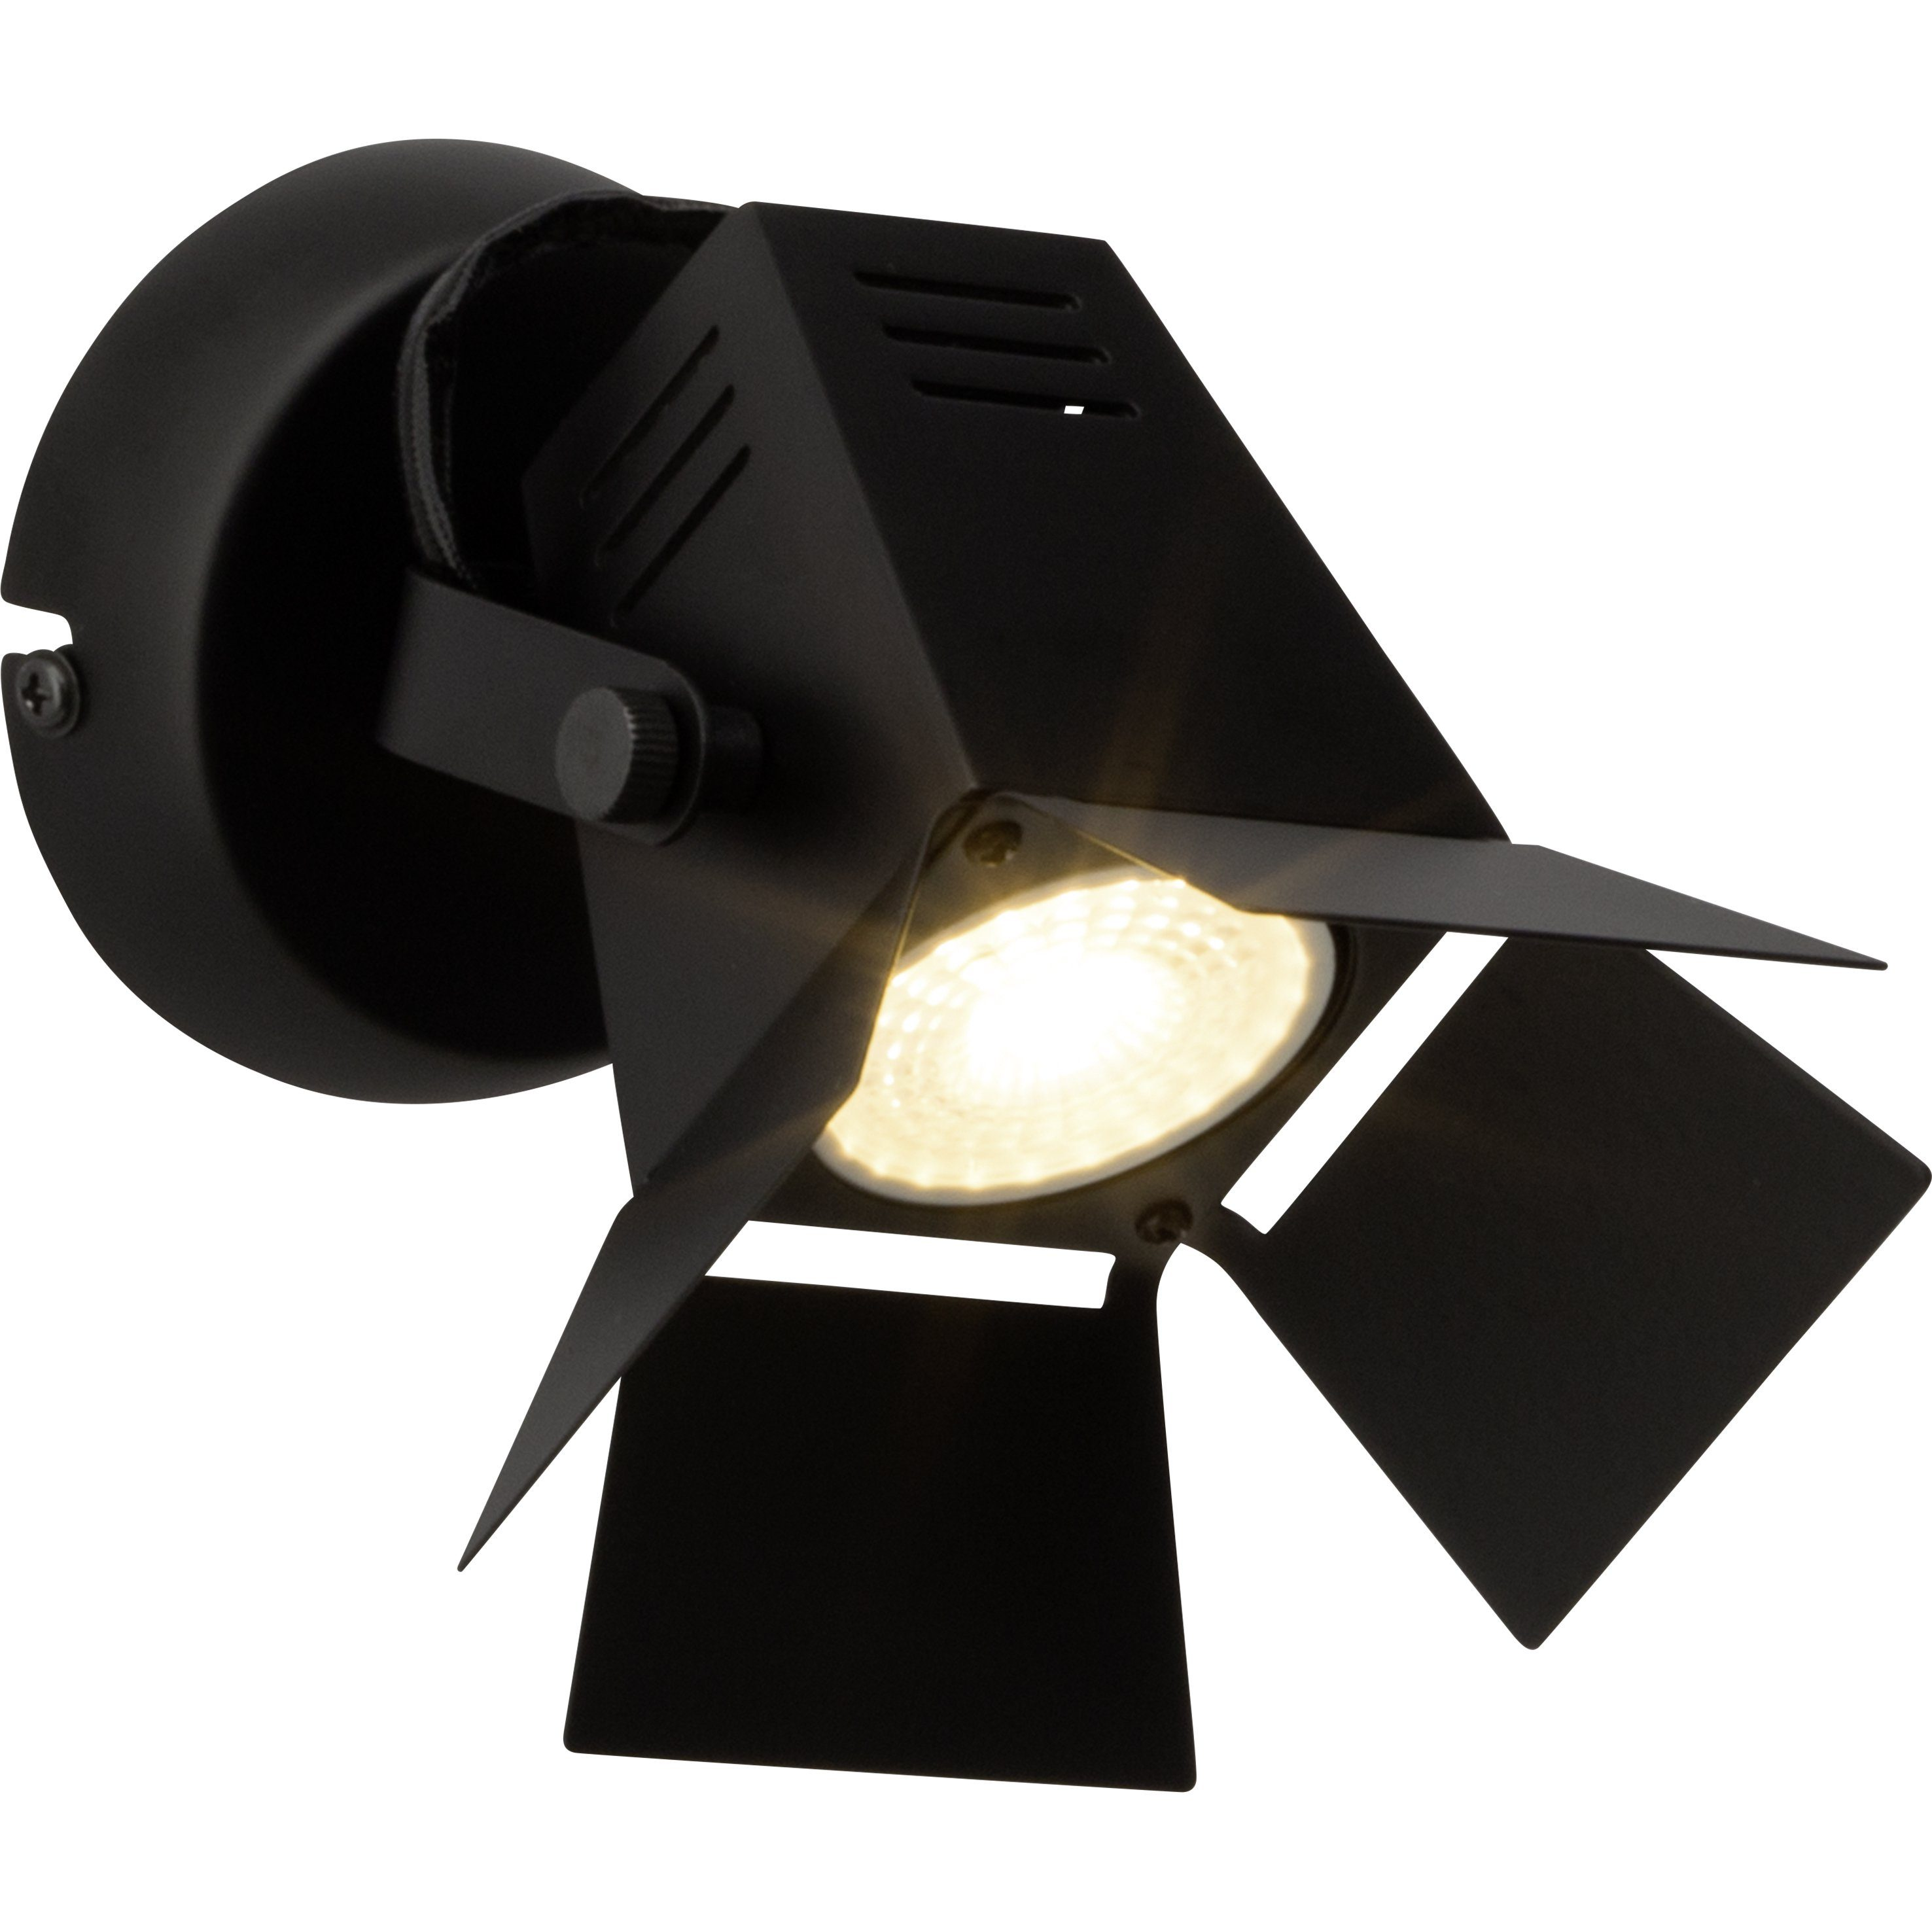 Brilliant Leuchten Movie LED Wandspot schwarz matt